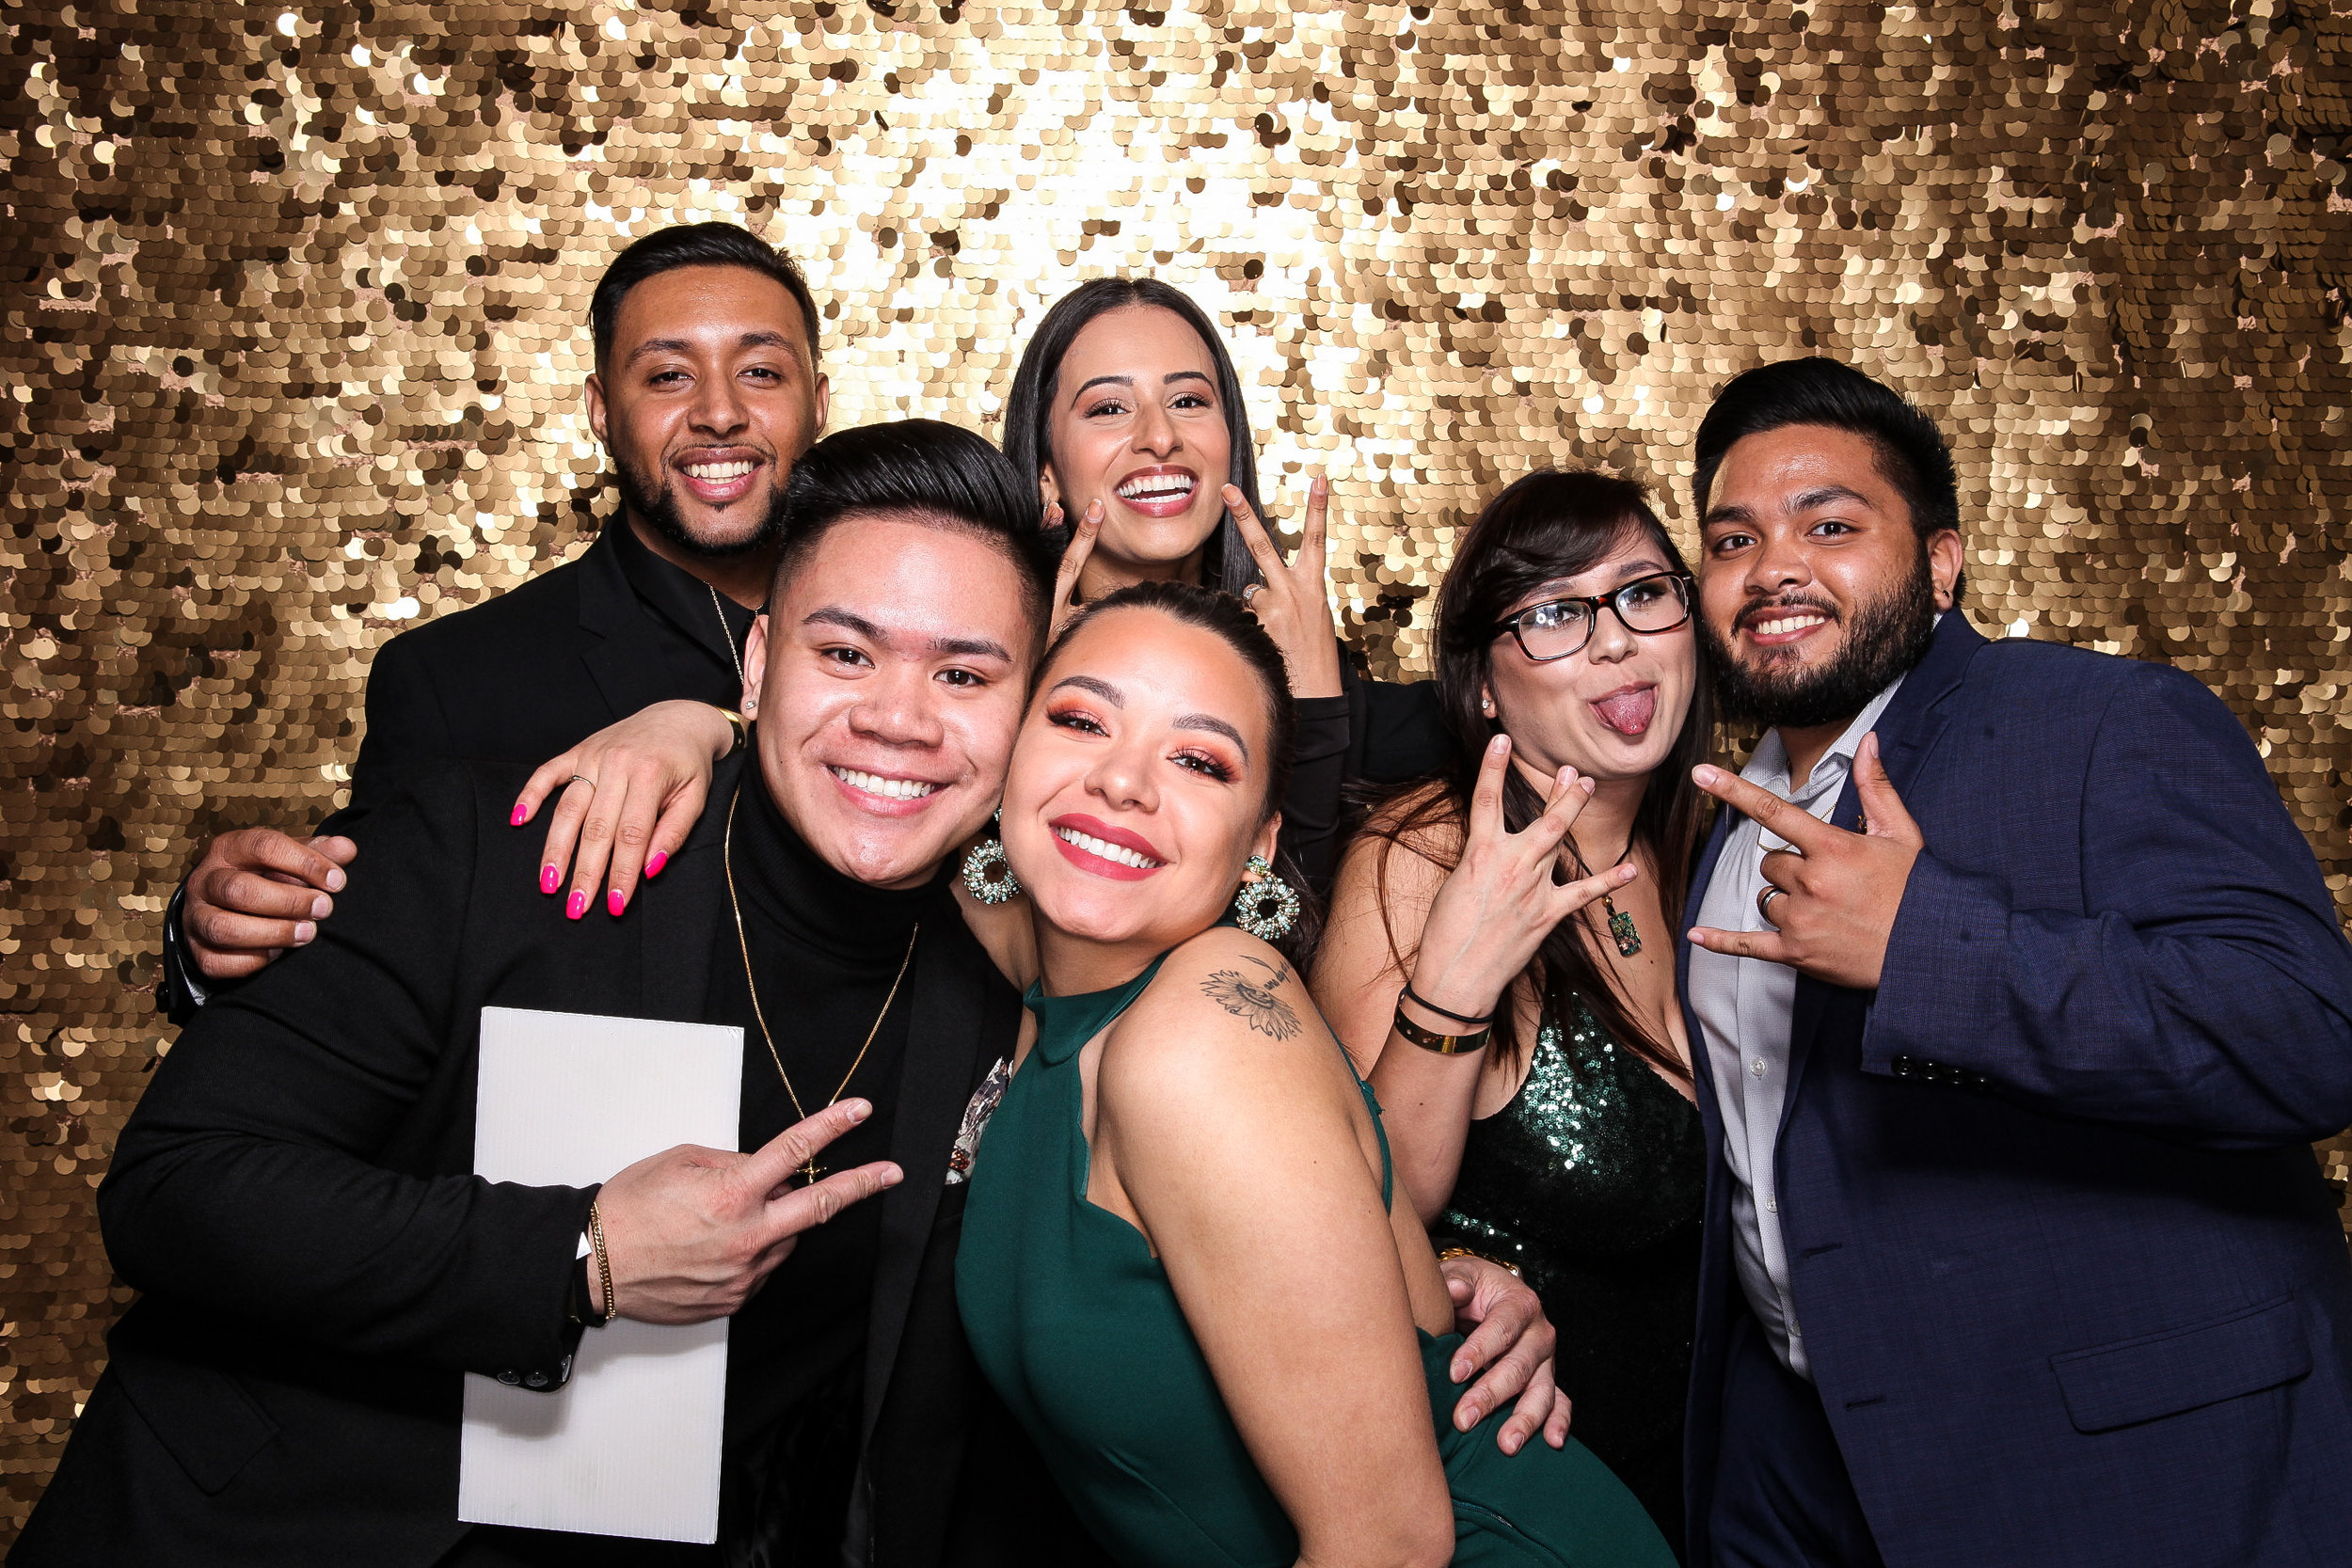 20190503_Adelphi_Senior_Formal-152.jpg